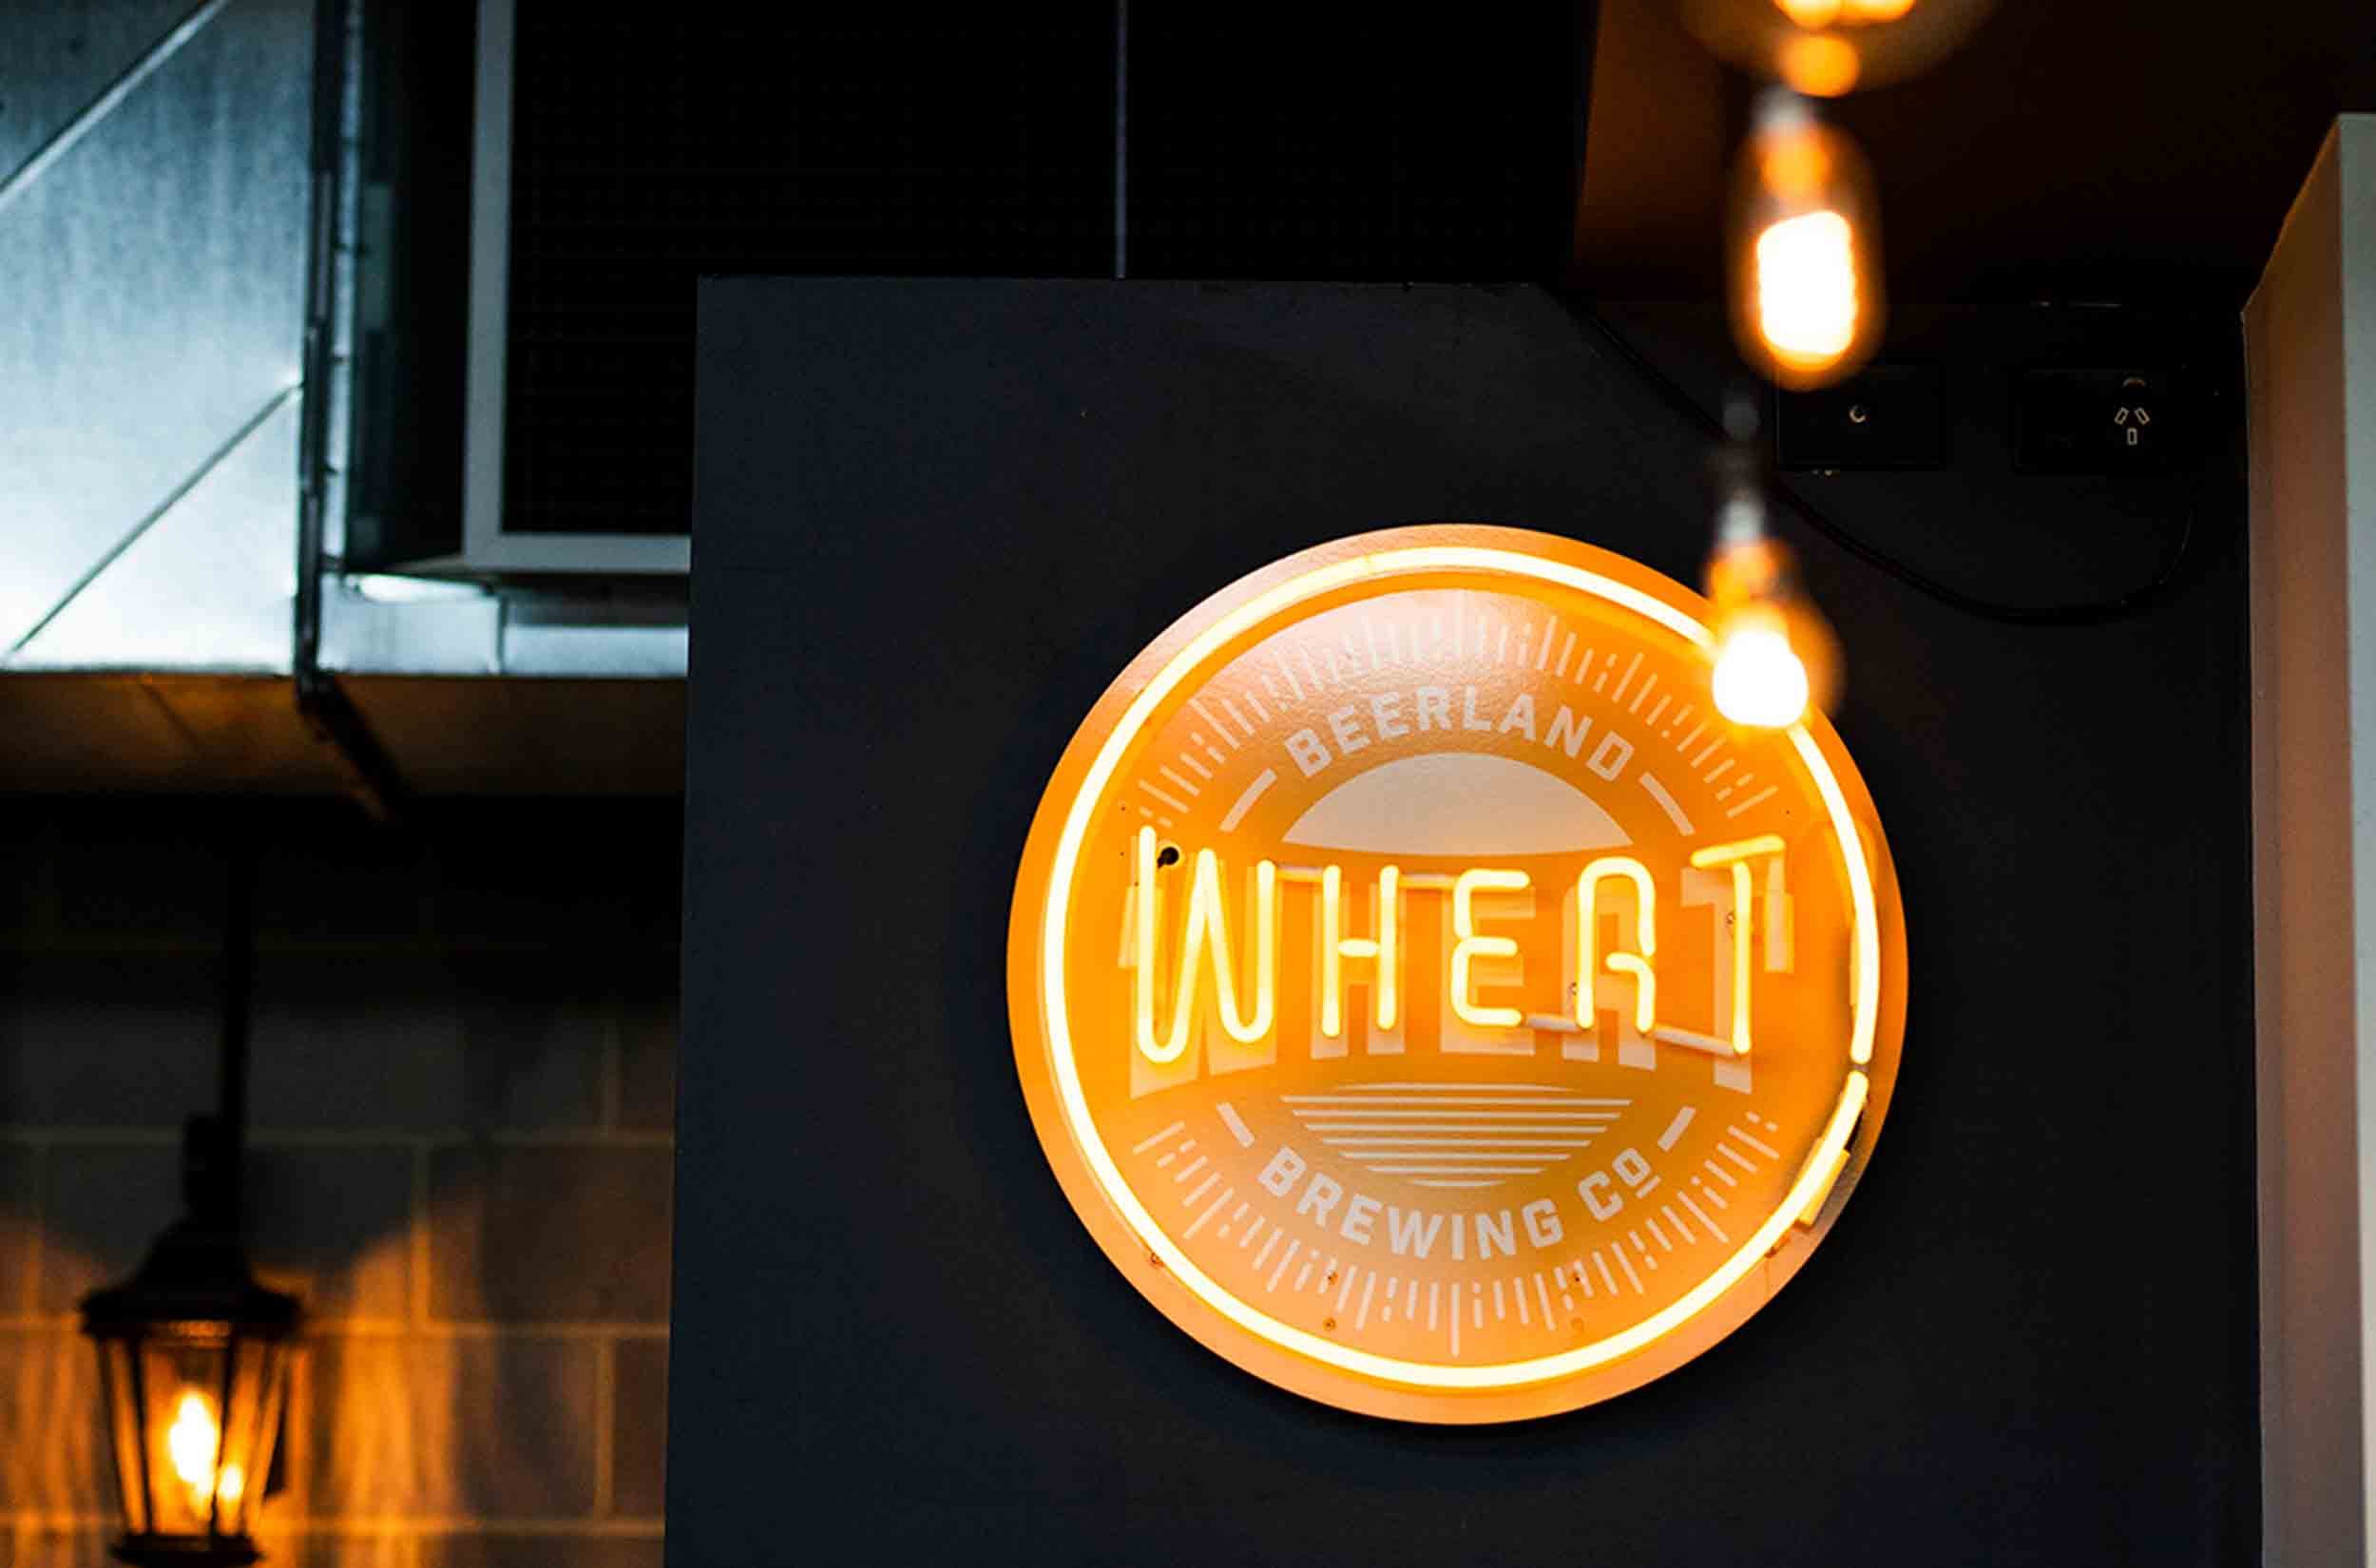 Whitfords Brewing Company Wheat Beer Neon Light